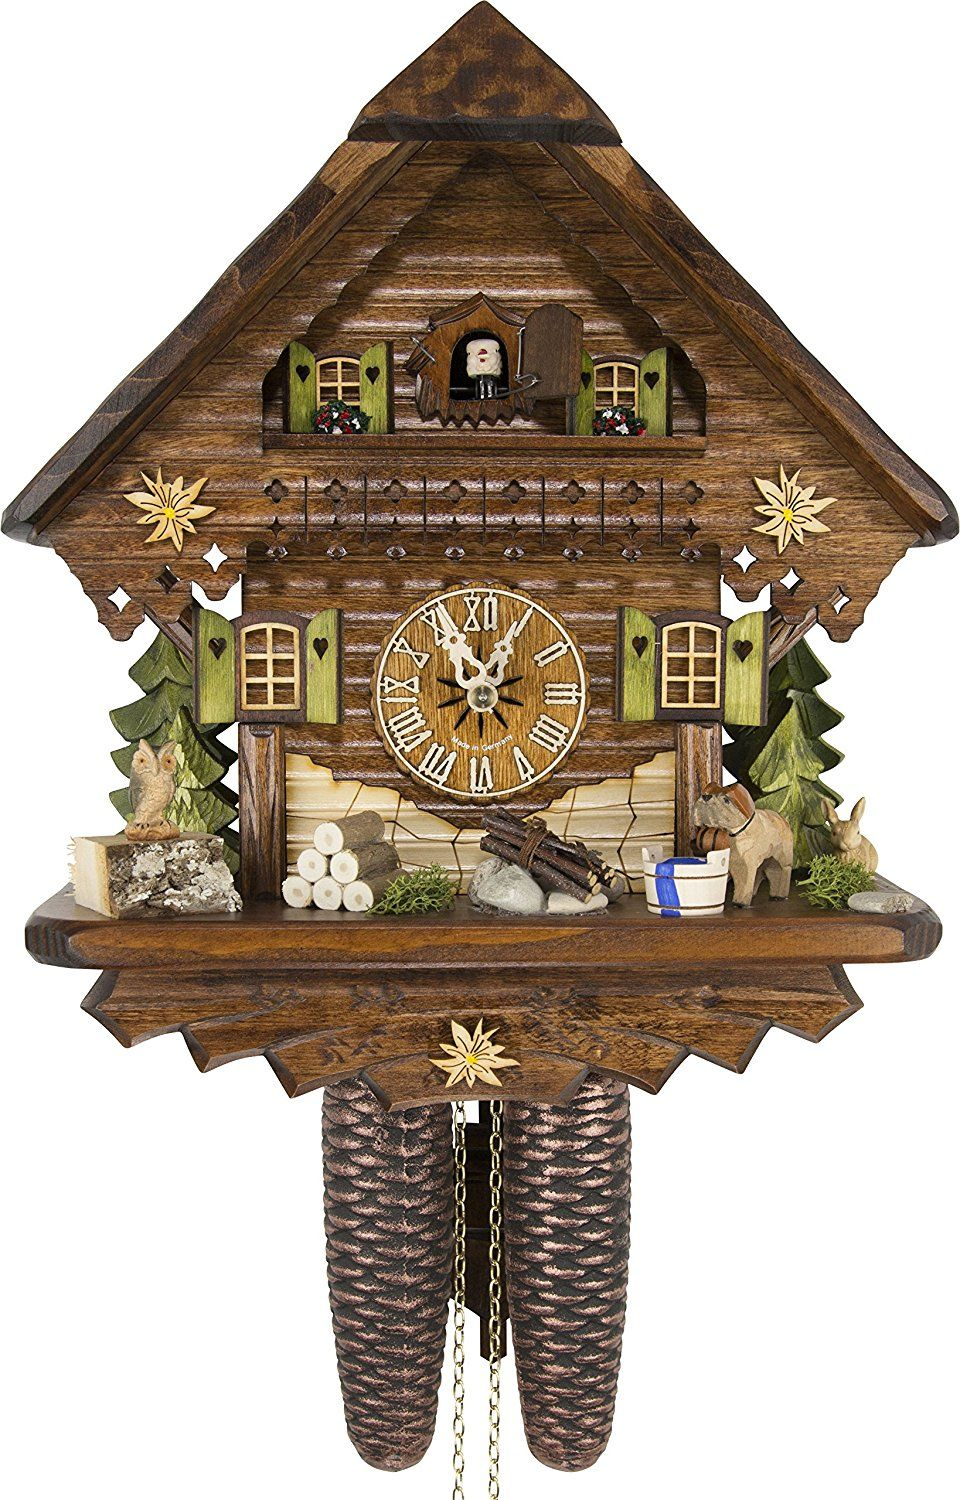 Amazon Com German Cuckoo Clock Summer Meadow Chalet By Cuckoo Palace With 8 Day Movement 13 1 3 Inches Height Home Kitchen Cuckoo Clock Cuckoo Clock